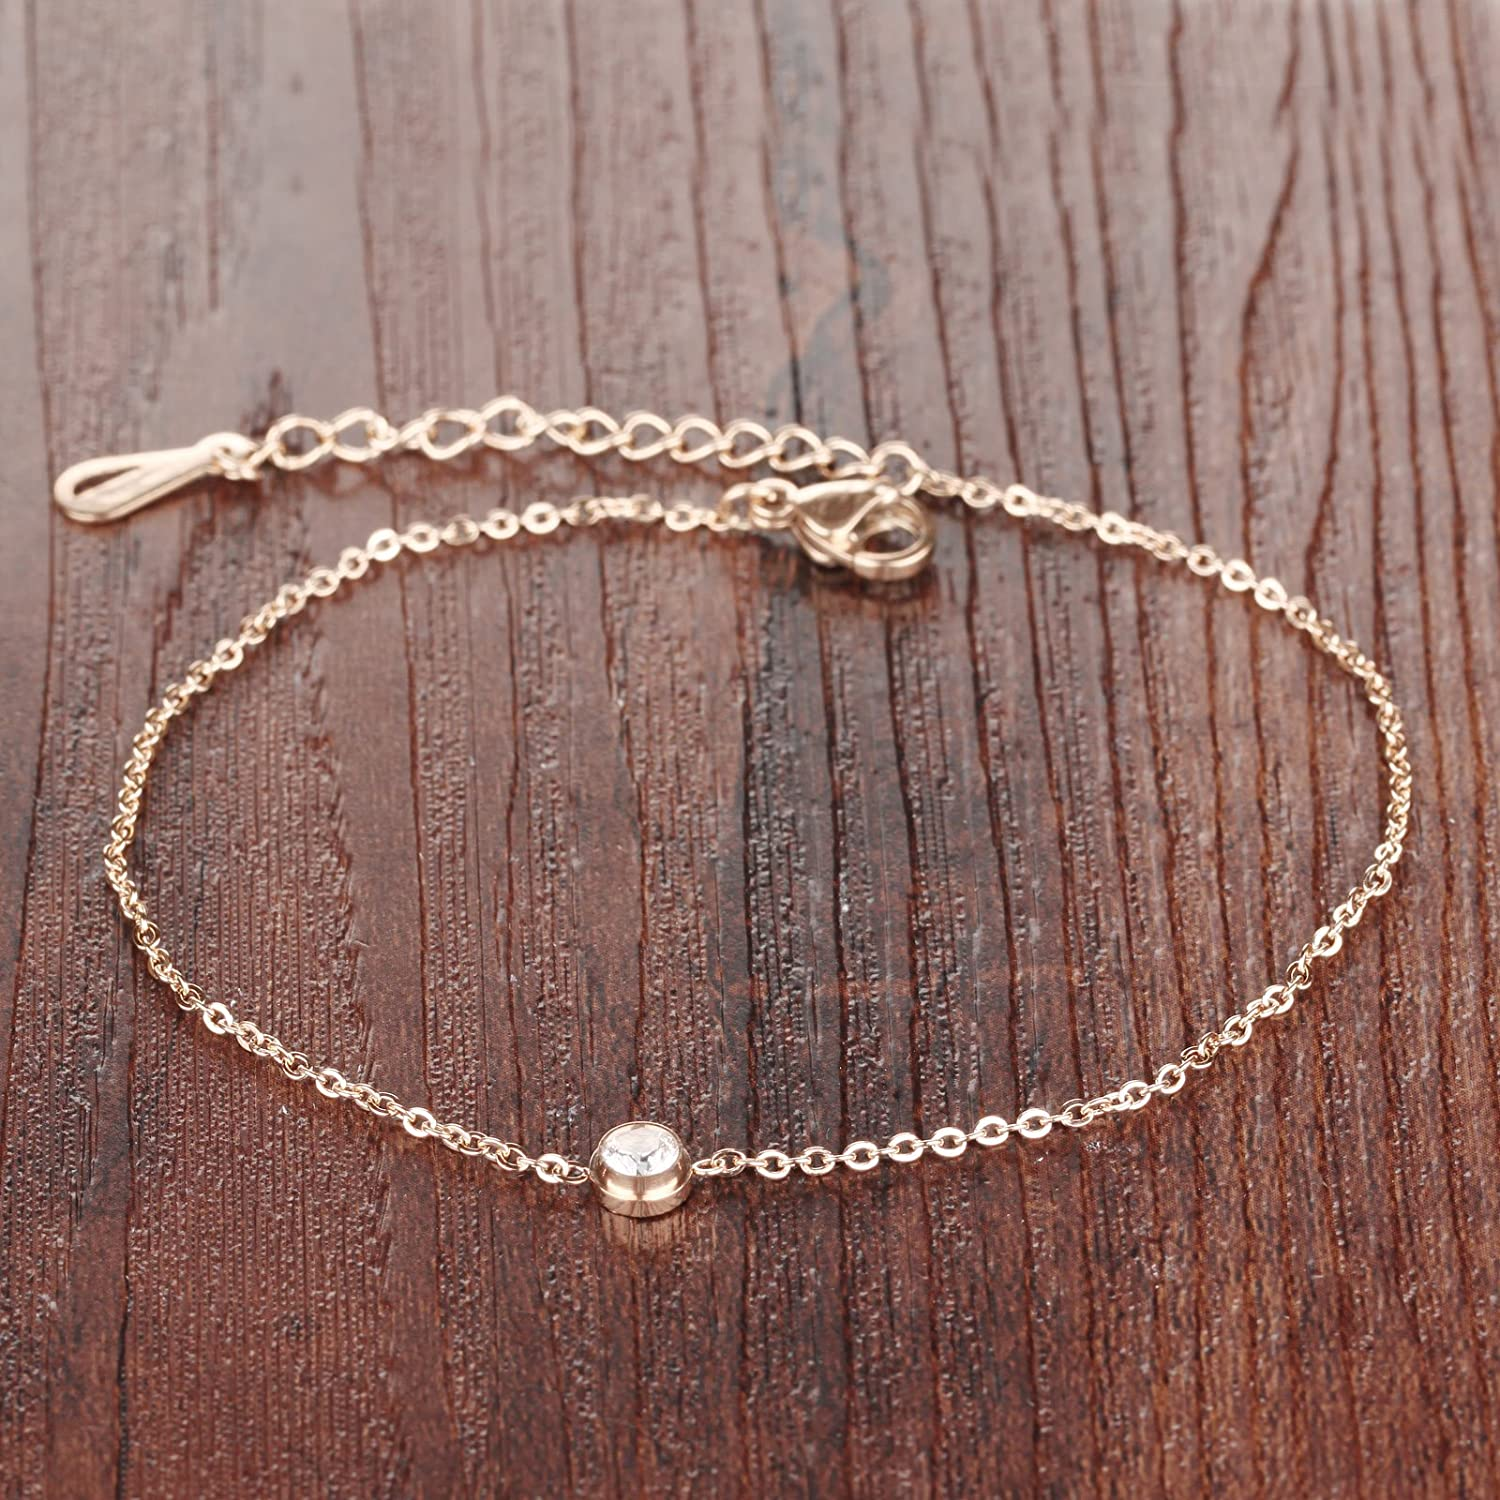 TOMLEE Women Gold Plated Stainless Steel Anklet Sideways Cross Charm Beach Ankle Chain Bracelet Foot Jewelry with Extension Gift